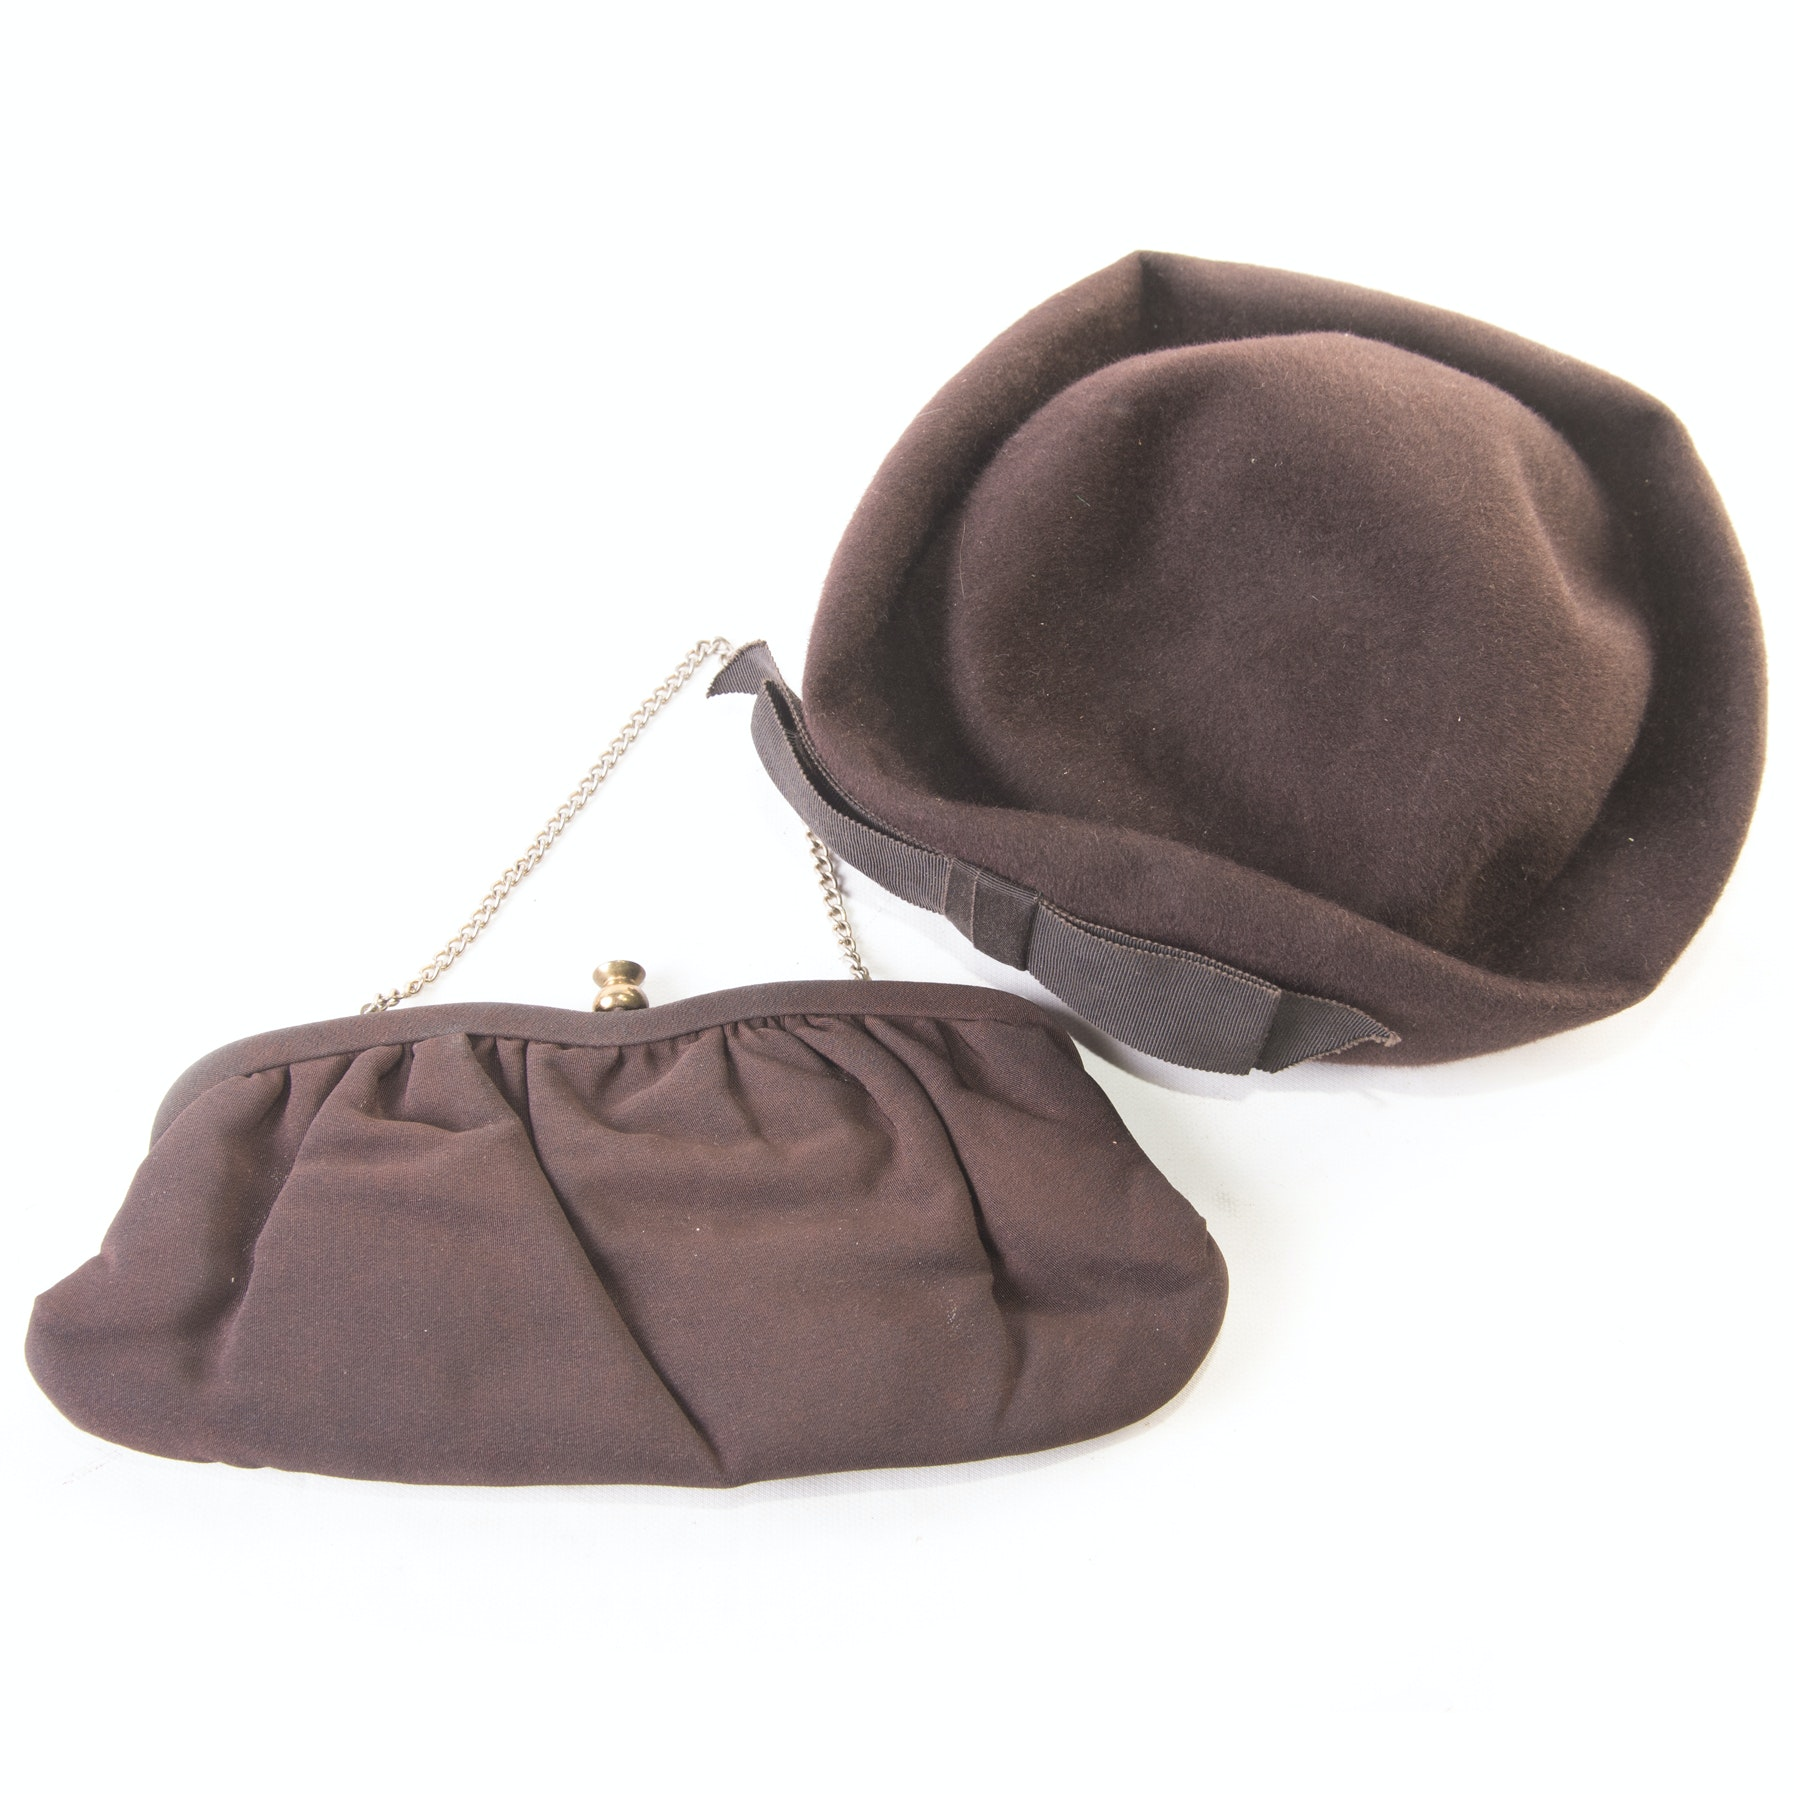 Vintage Wool Pillbox Hat and Clutch